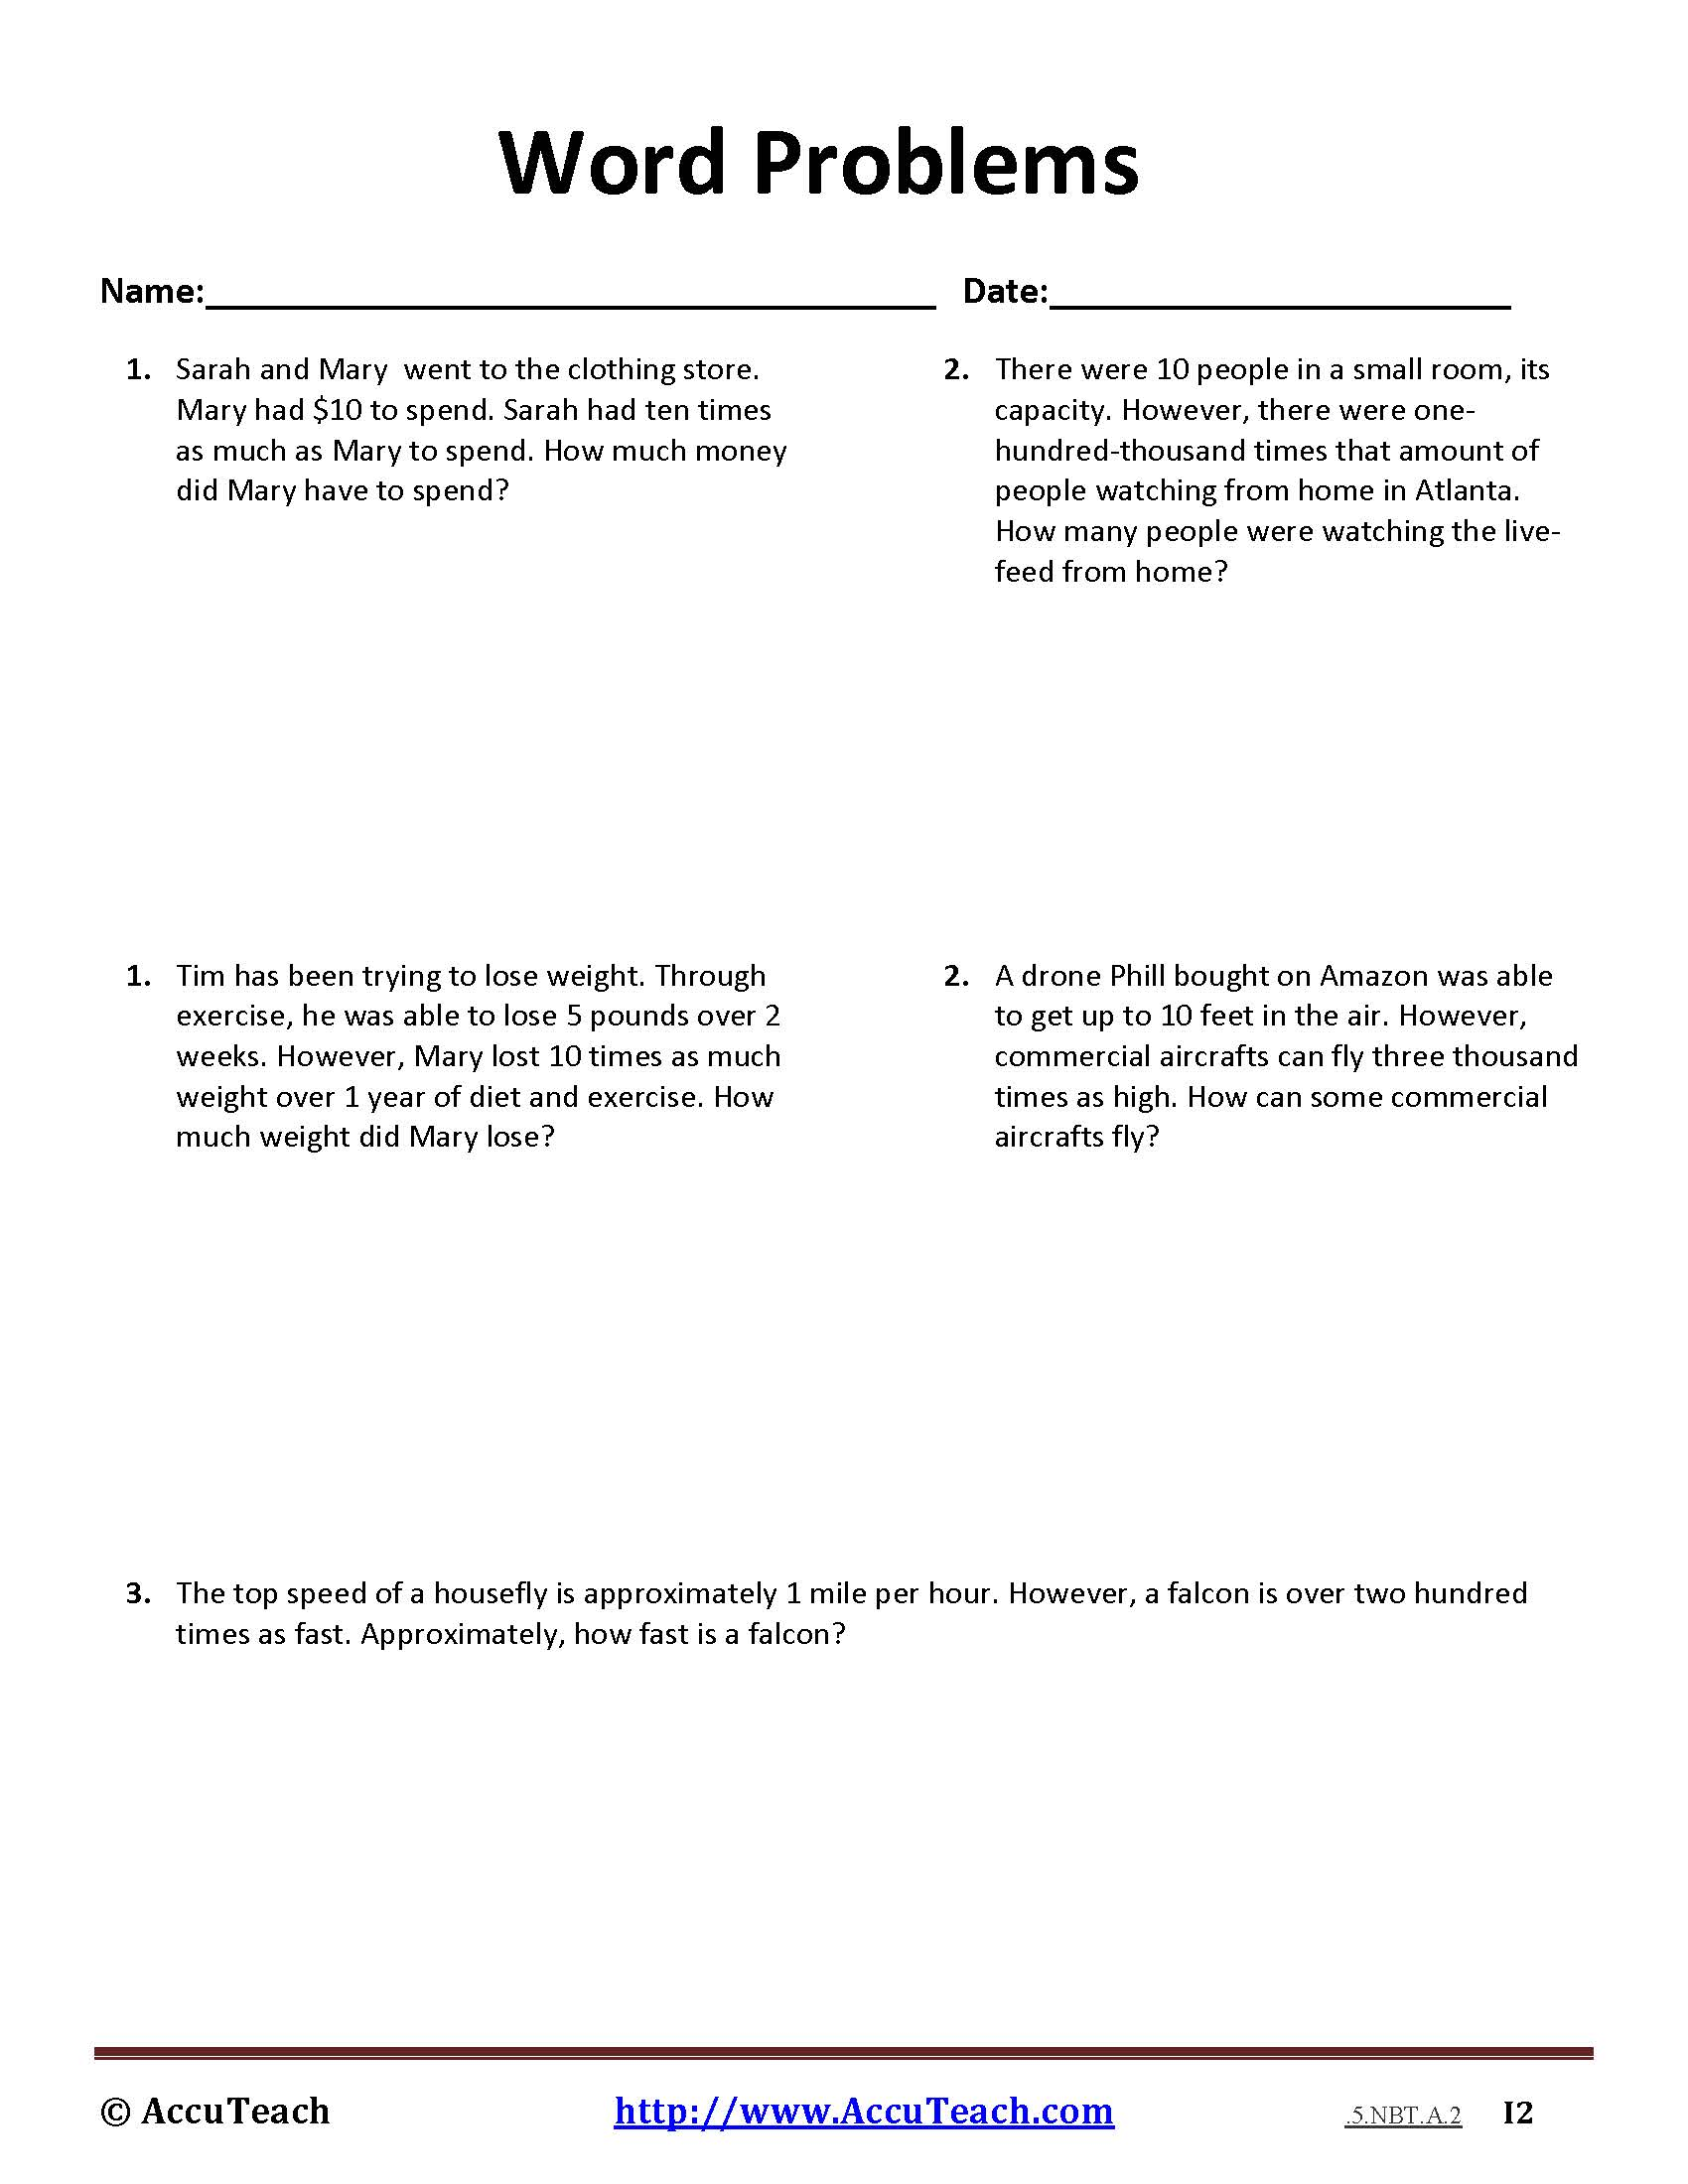 5 Nbt A 2 Common Core Story Problems Activity Sheet 8